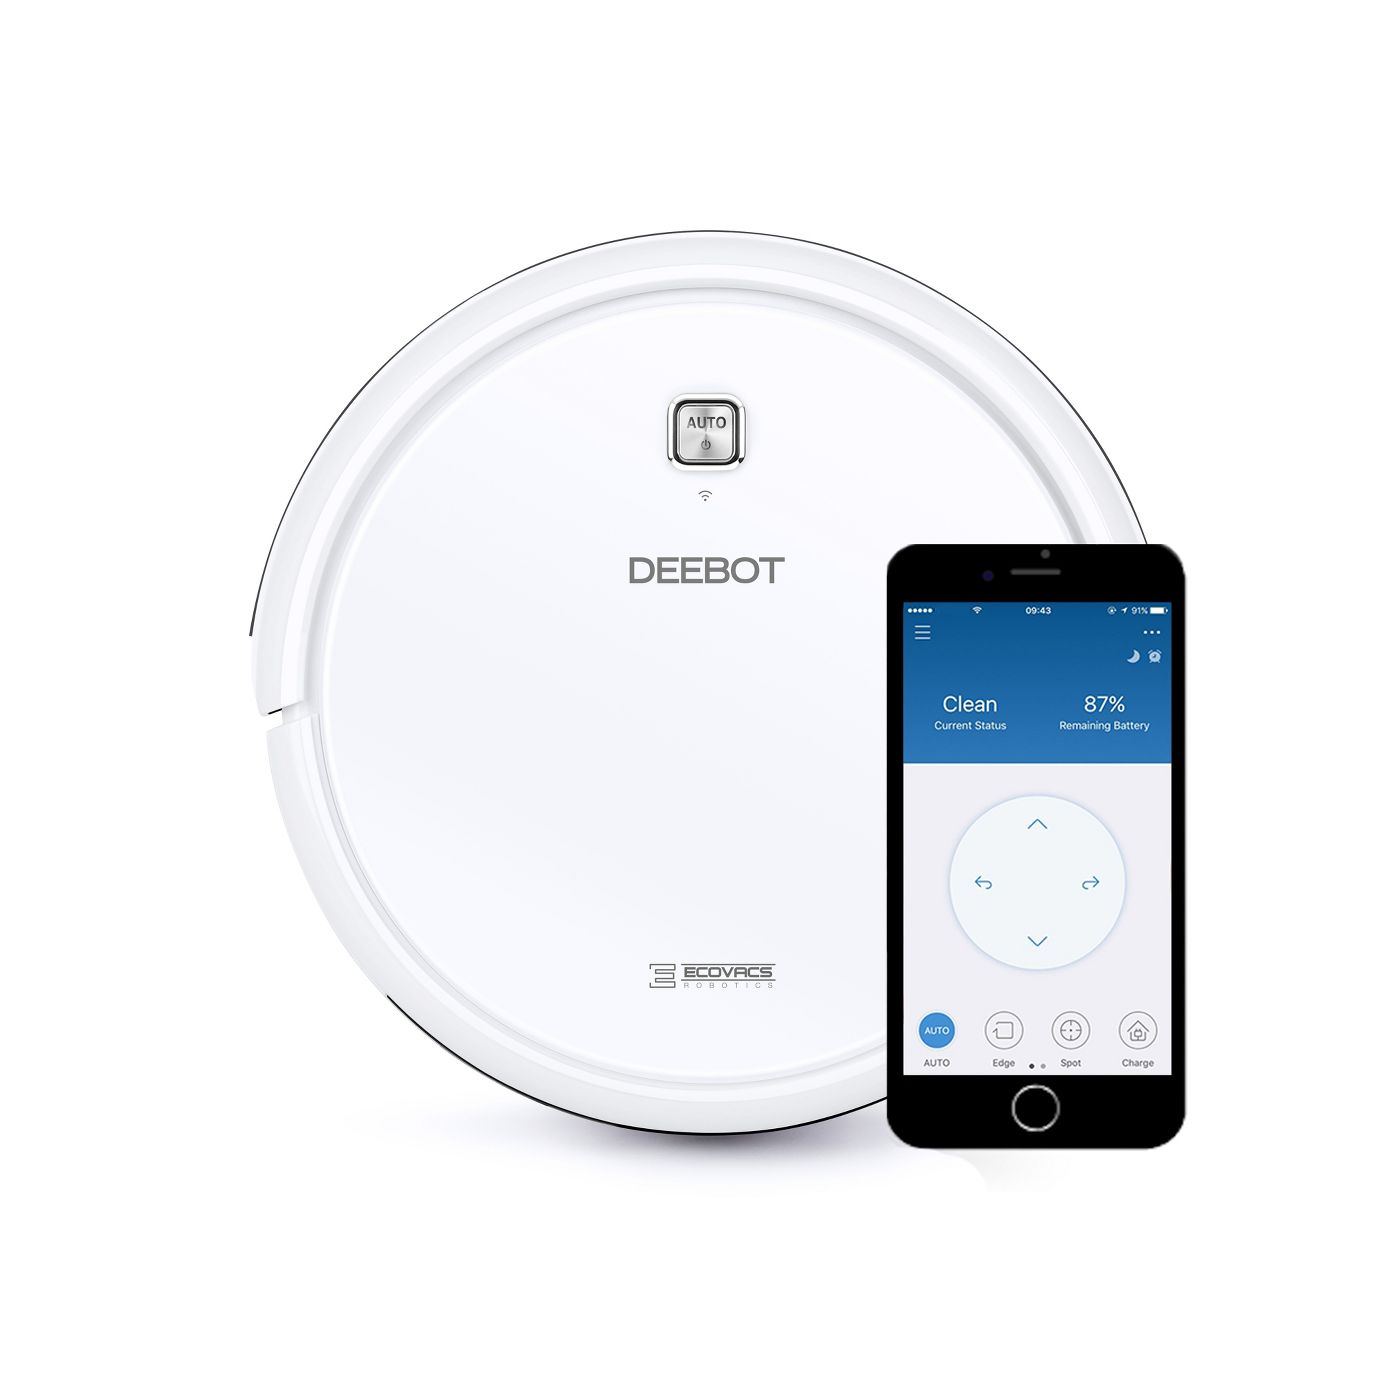 Ecovacs DEEBOT N79W Multi-Surface Robotic Vacuum Cleaner with App Control - image 1 of 5